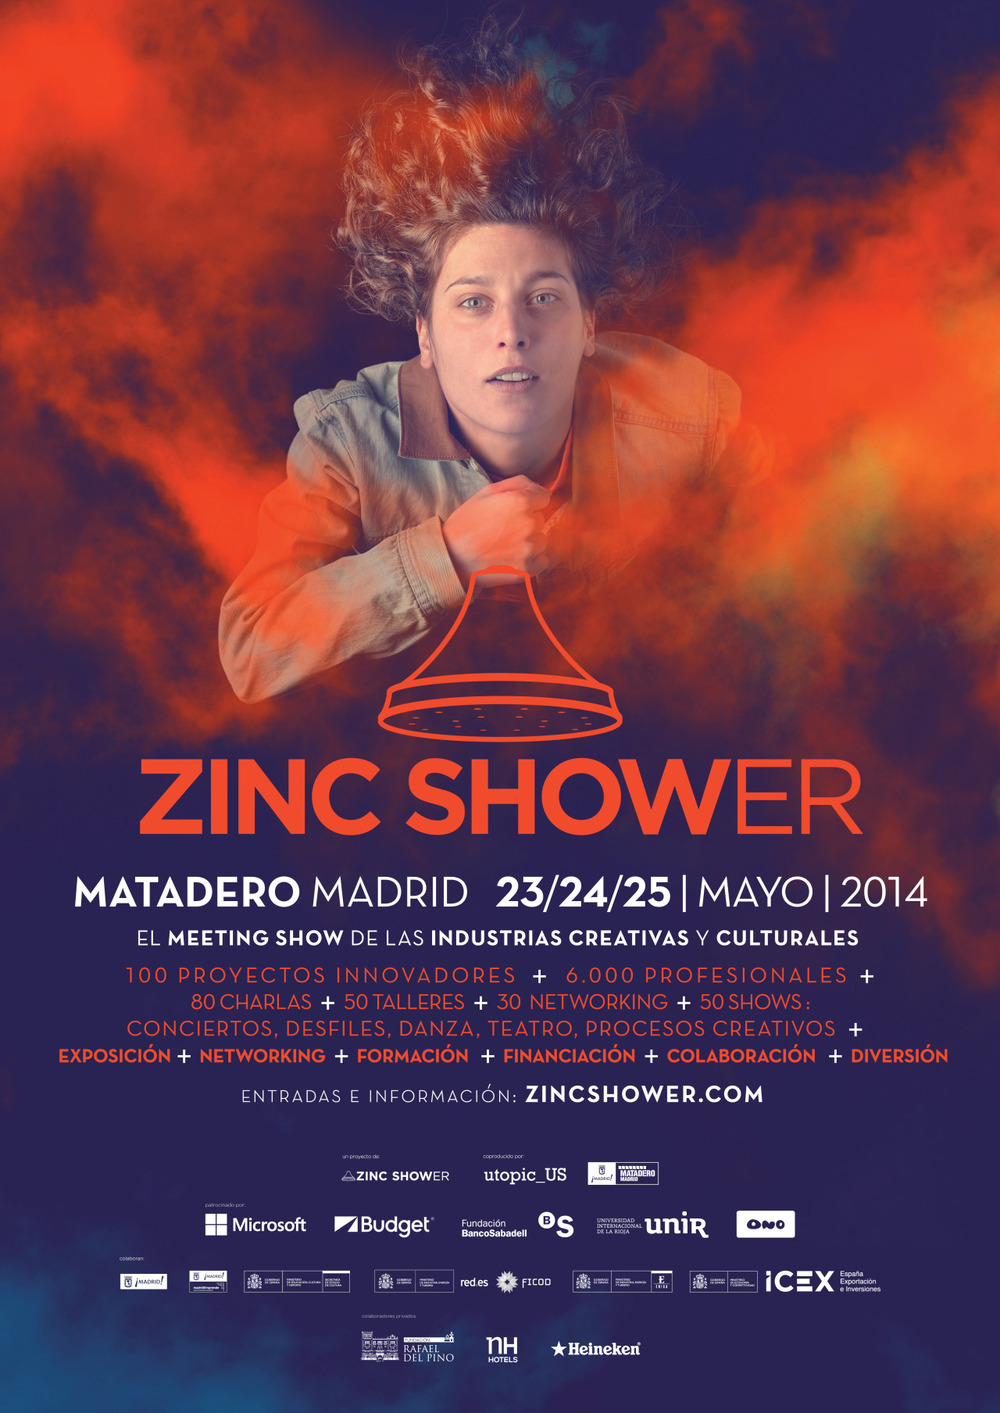 Being Berber concert confirmed for Zinc Shower 2014 at the Matadero, Madrid. (24 of May 18:00h)